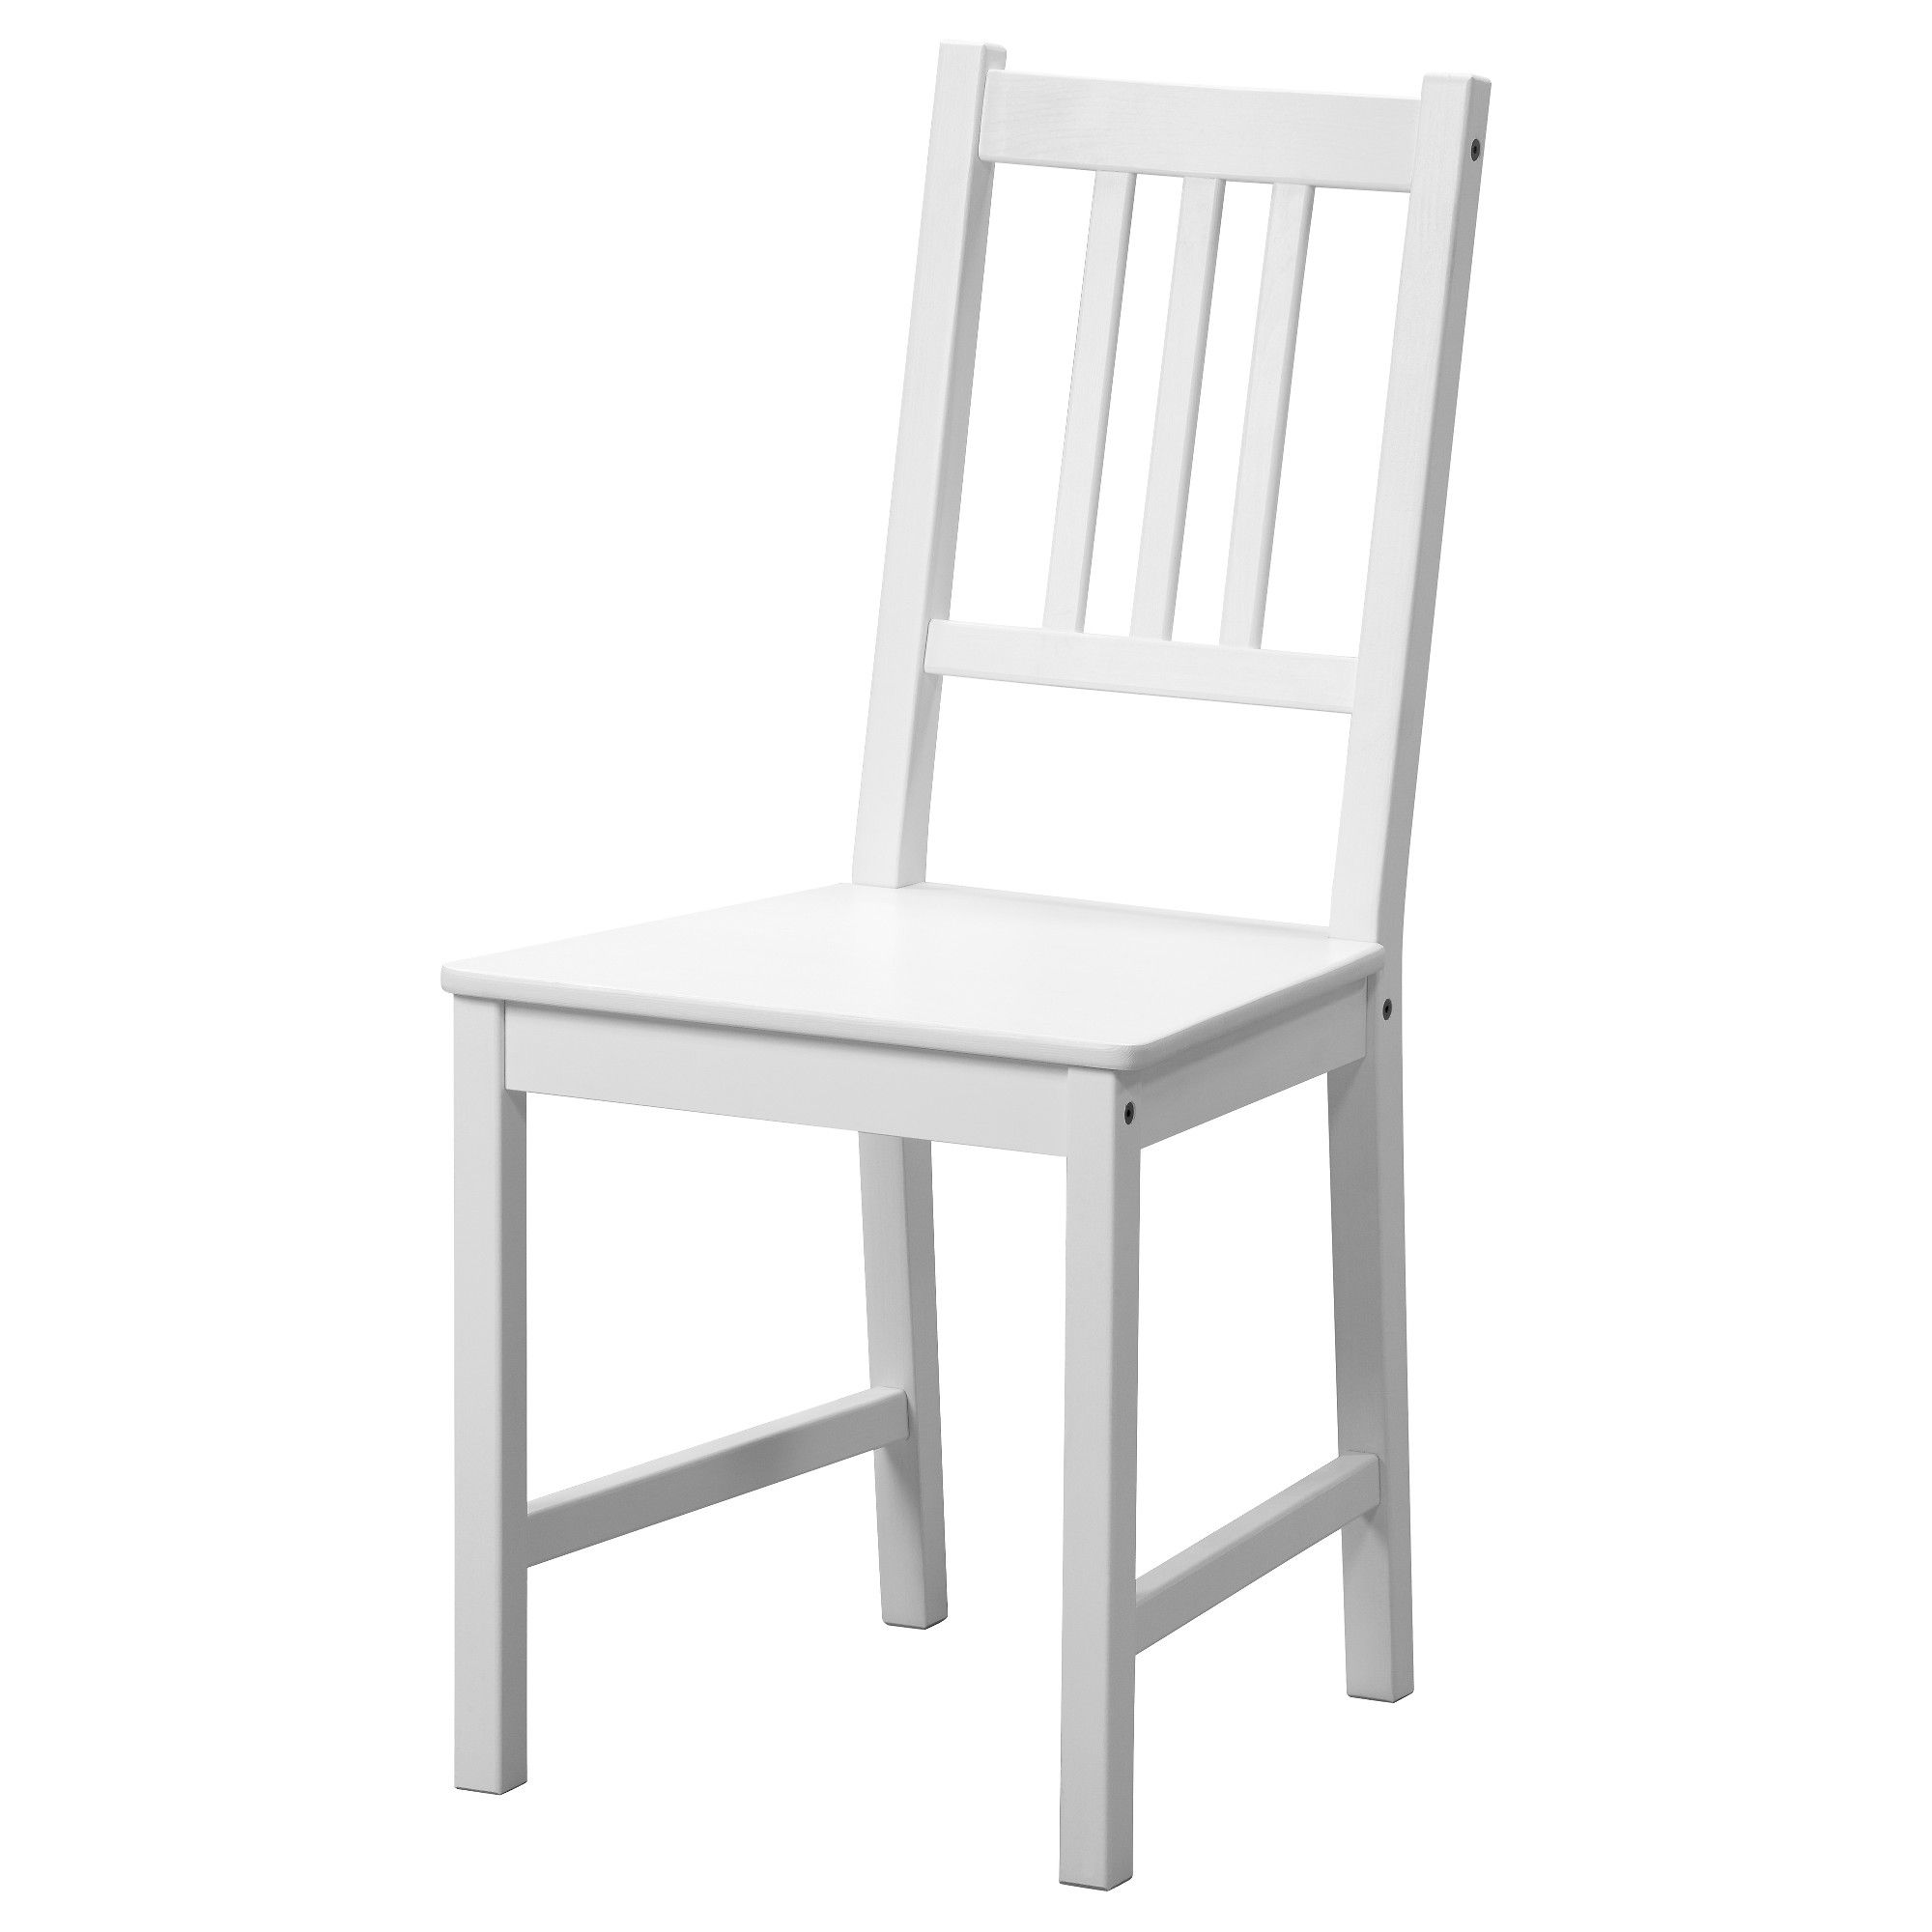 Kitchen Chairs Wood Stefan Chair White Ikea In 2019 Colne Villa Kitchen Ikea White